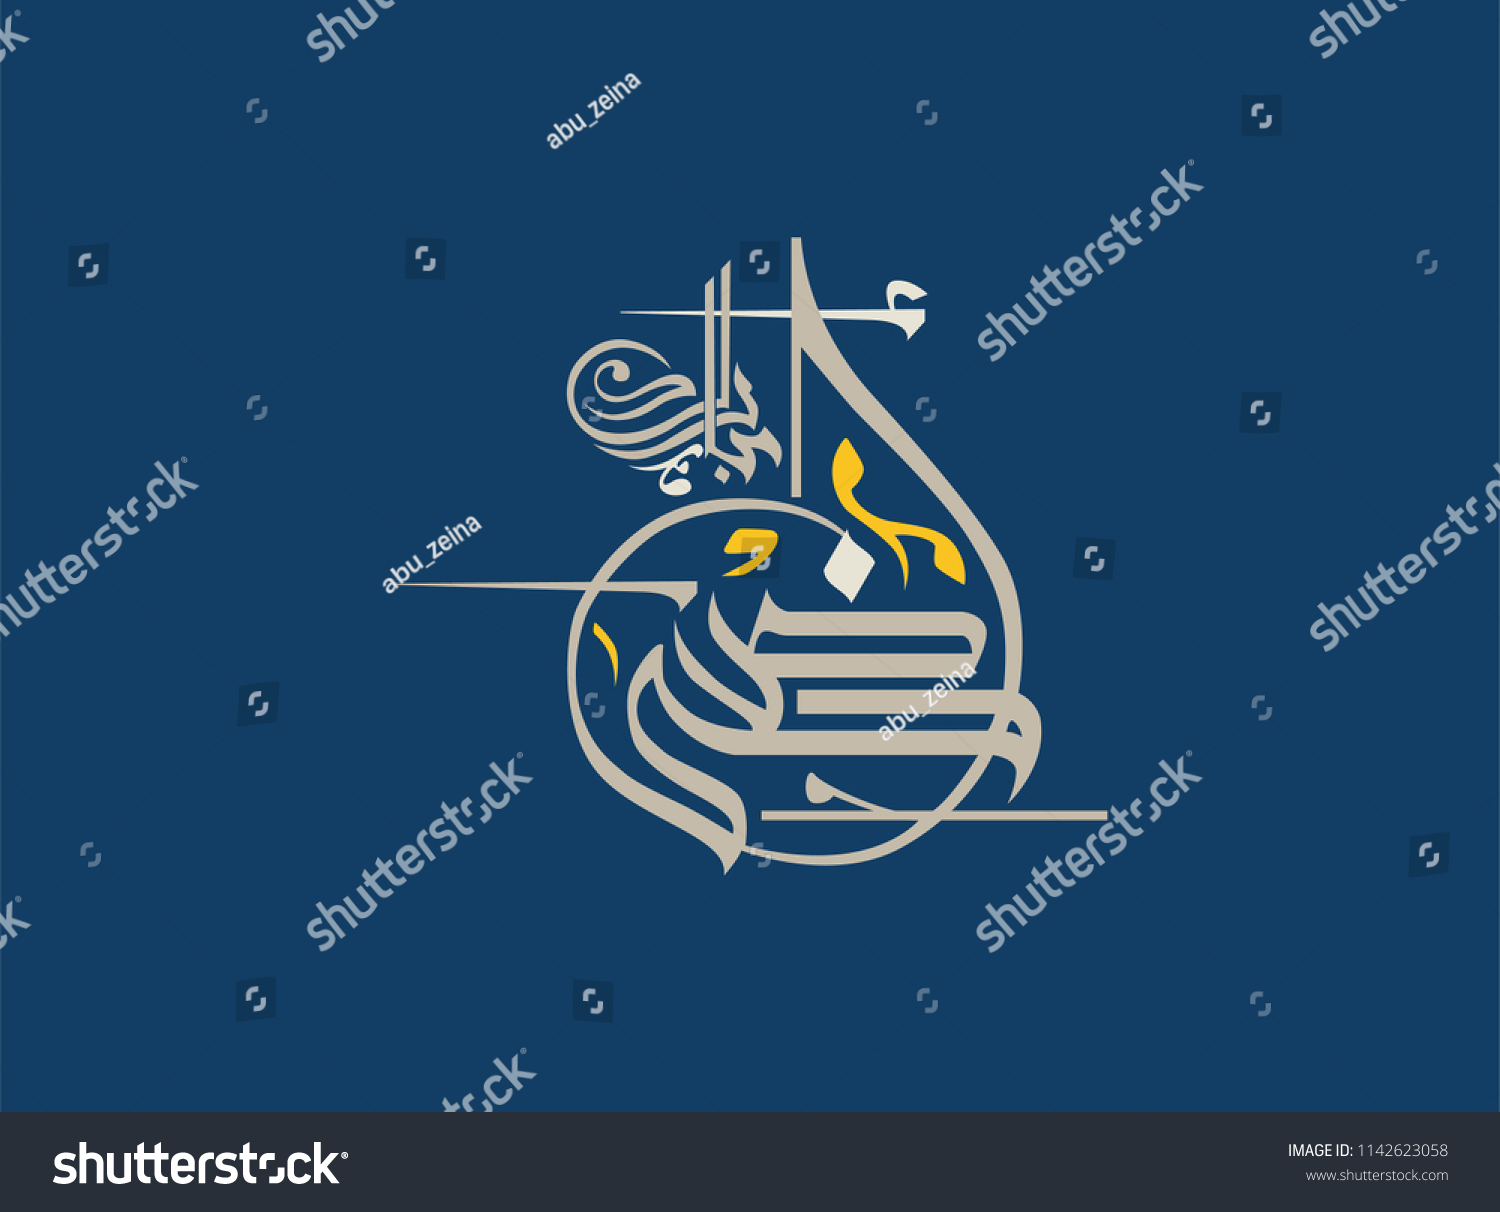 Adha mubarak arabic calligraphy eid greeting stock vector royalty adha mubarak arabic calligraphy for eid greeting islamic eid adha premium logo design for formal m4hsunfo